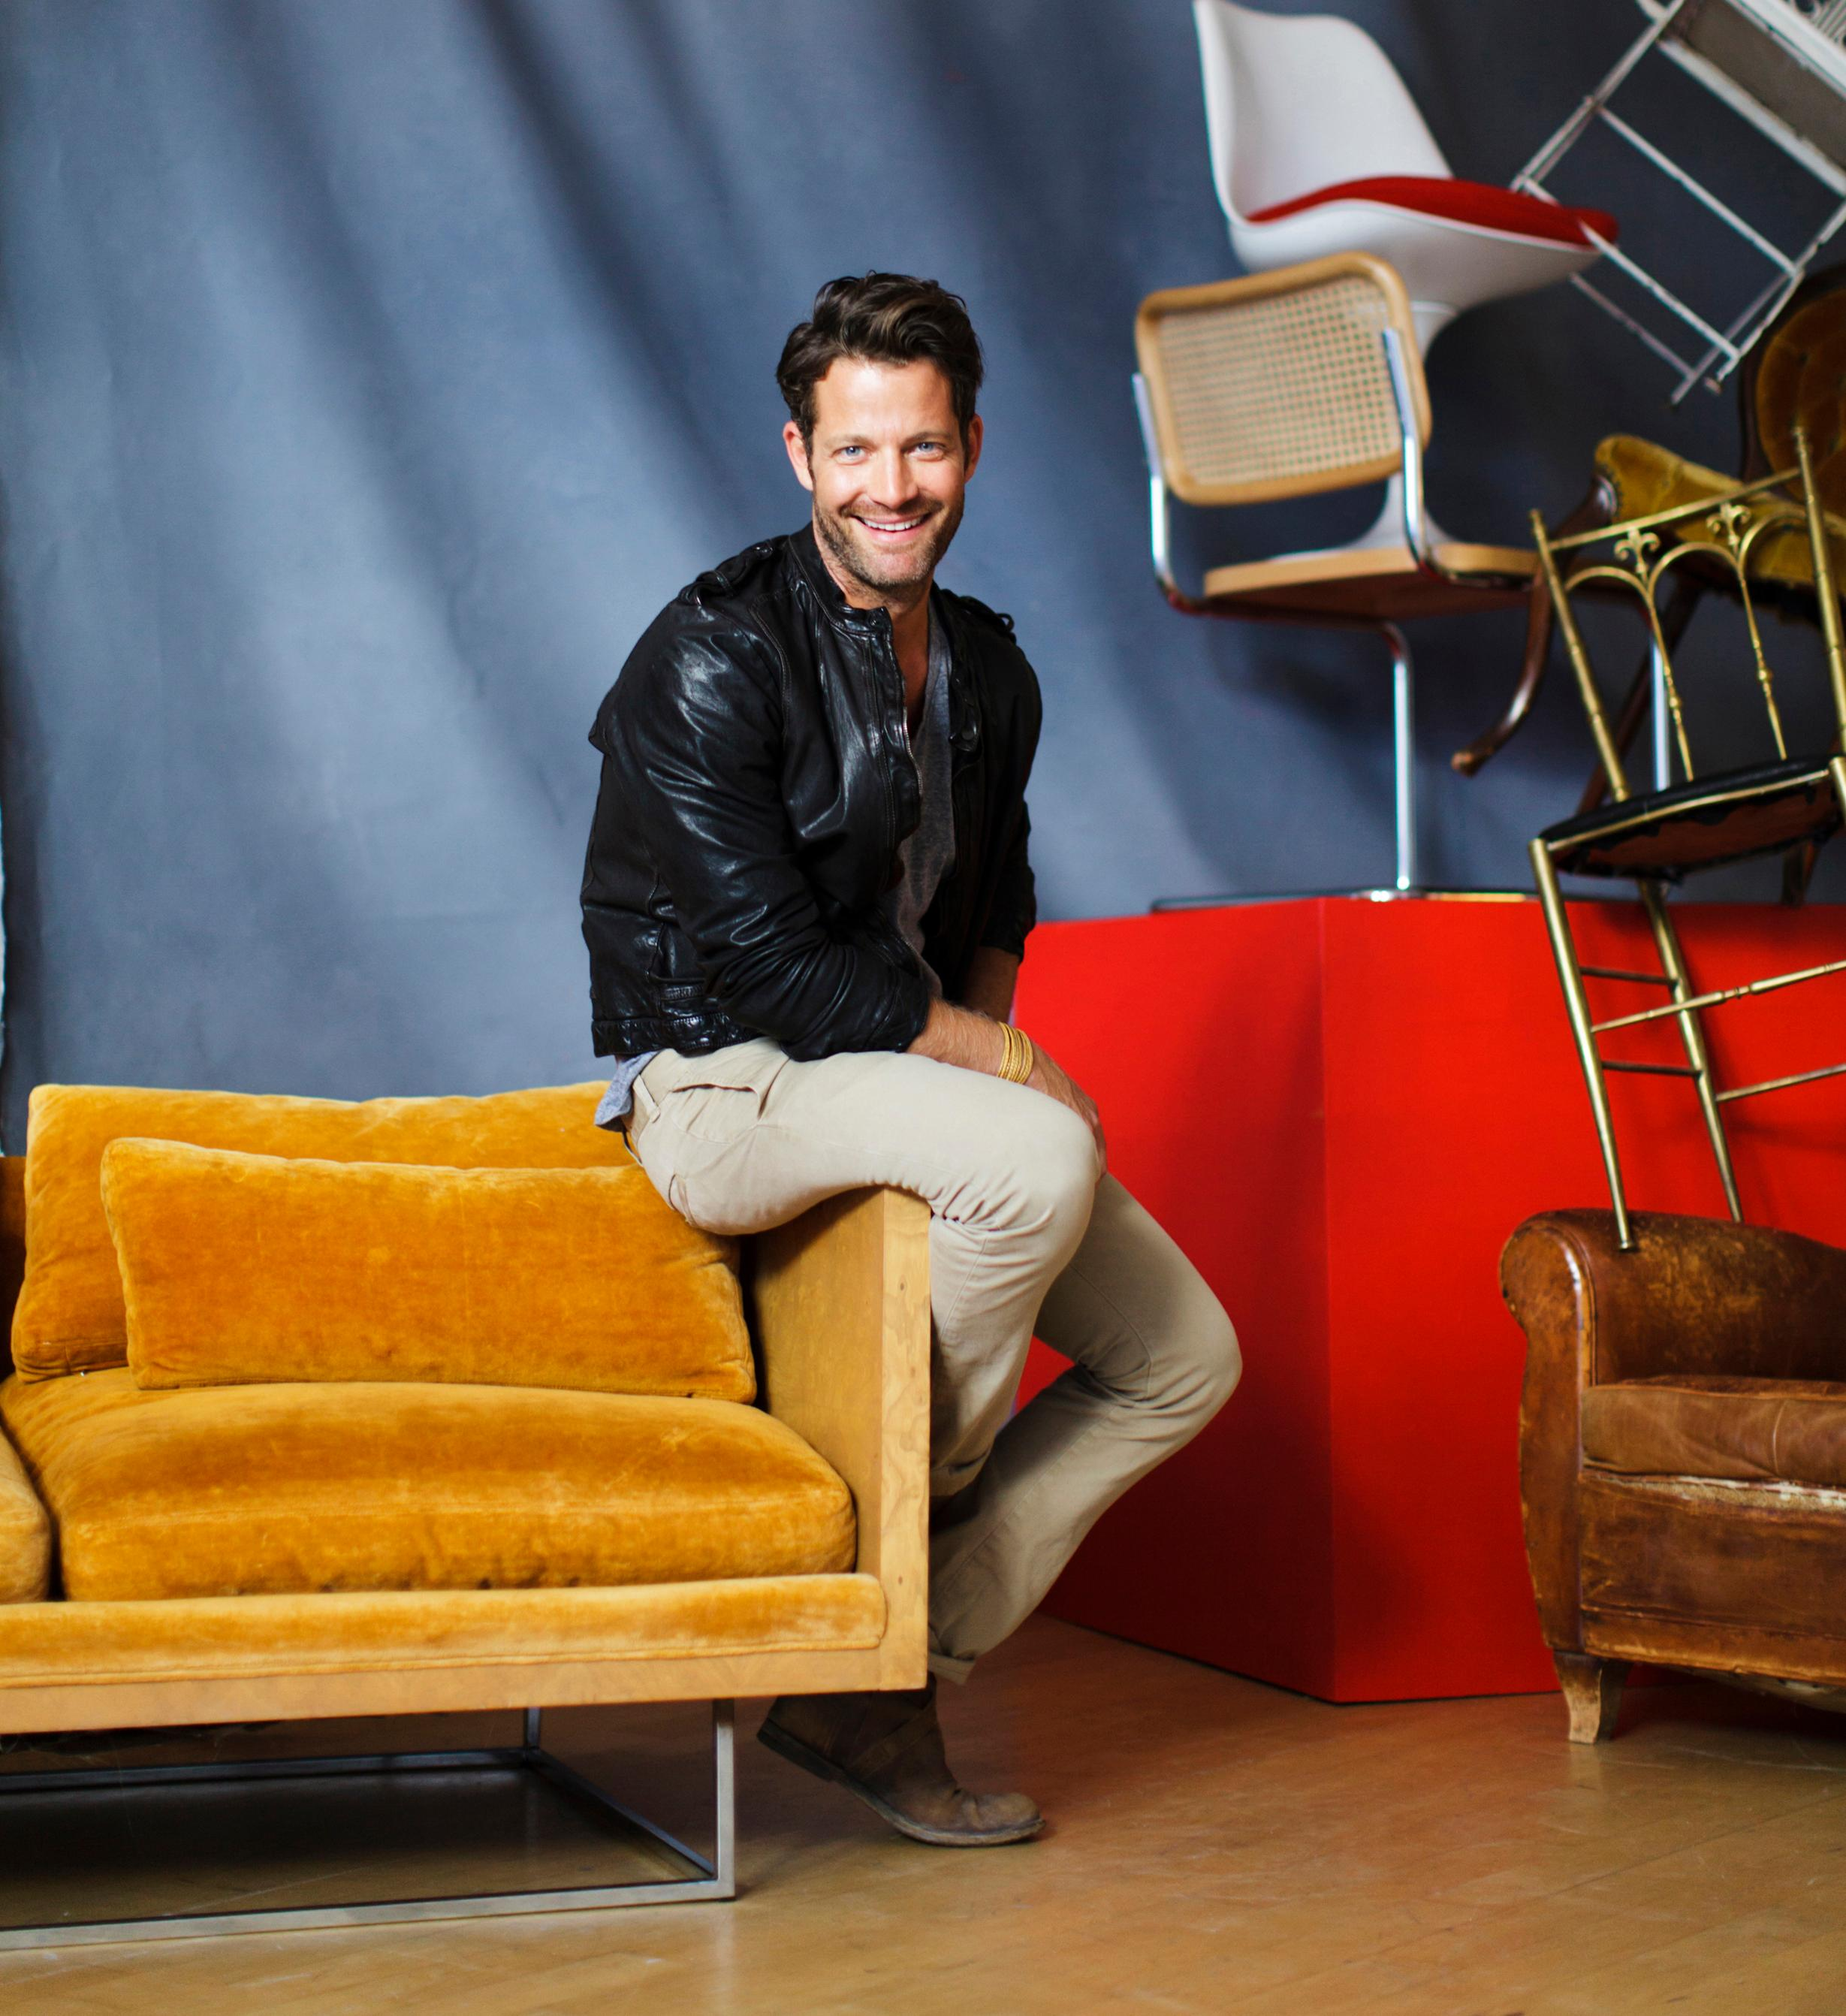 designer nate berkus his roots vintage style and target home headshot accent table diy wood end wicker garden furniture sets blue area rugs porch chairs dale tiffany stained glass